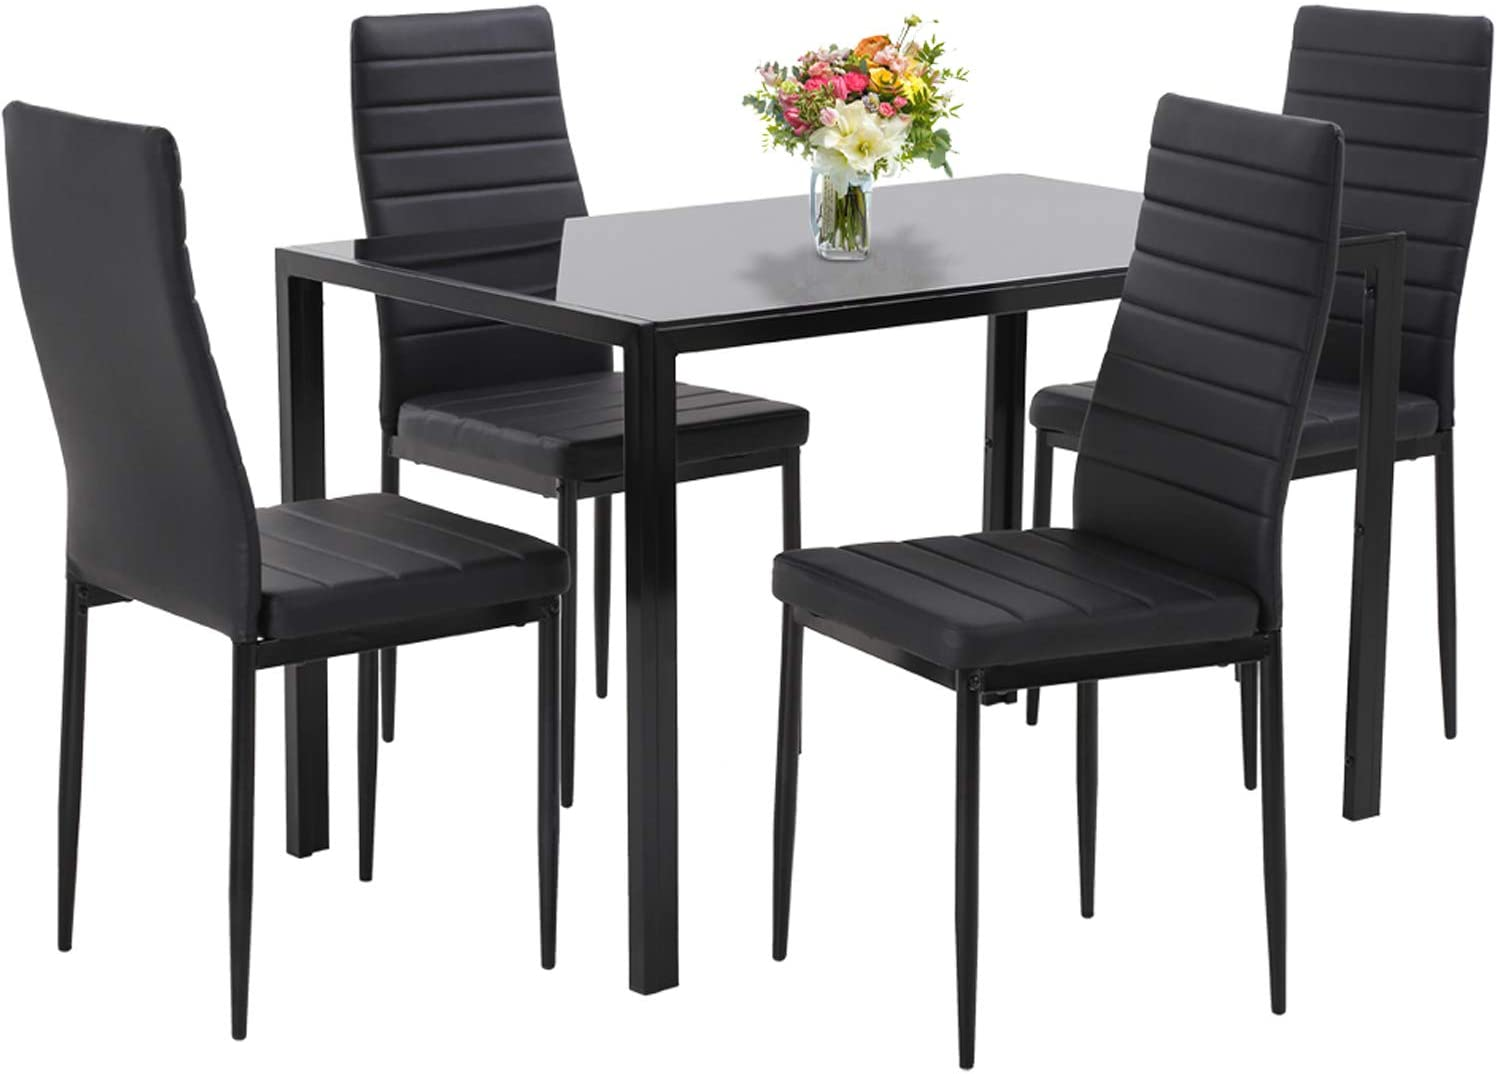 Best for durability: Dining Room Table Set 5-Piece Faux